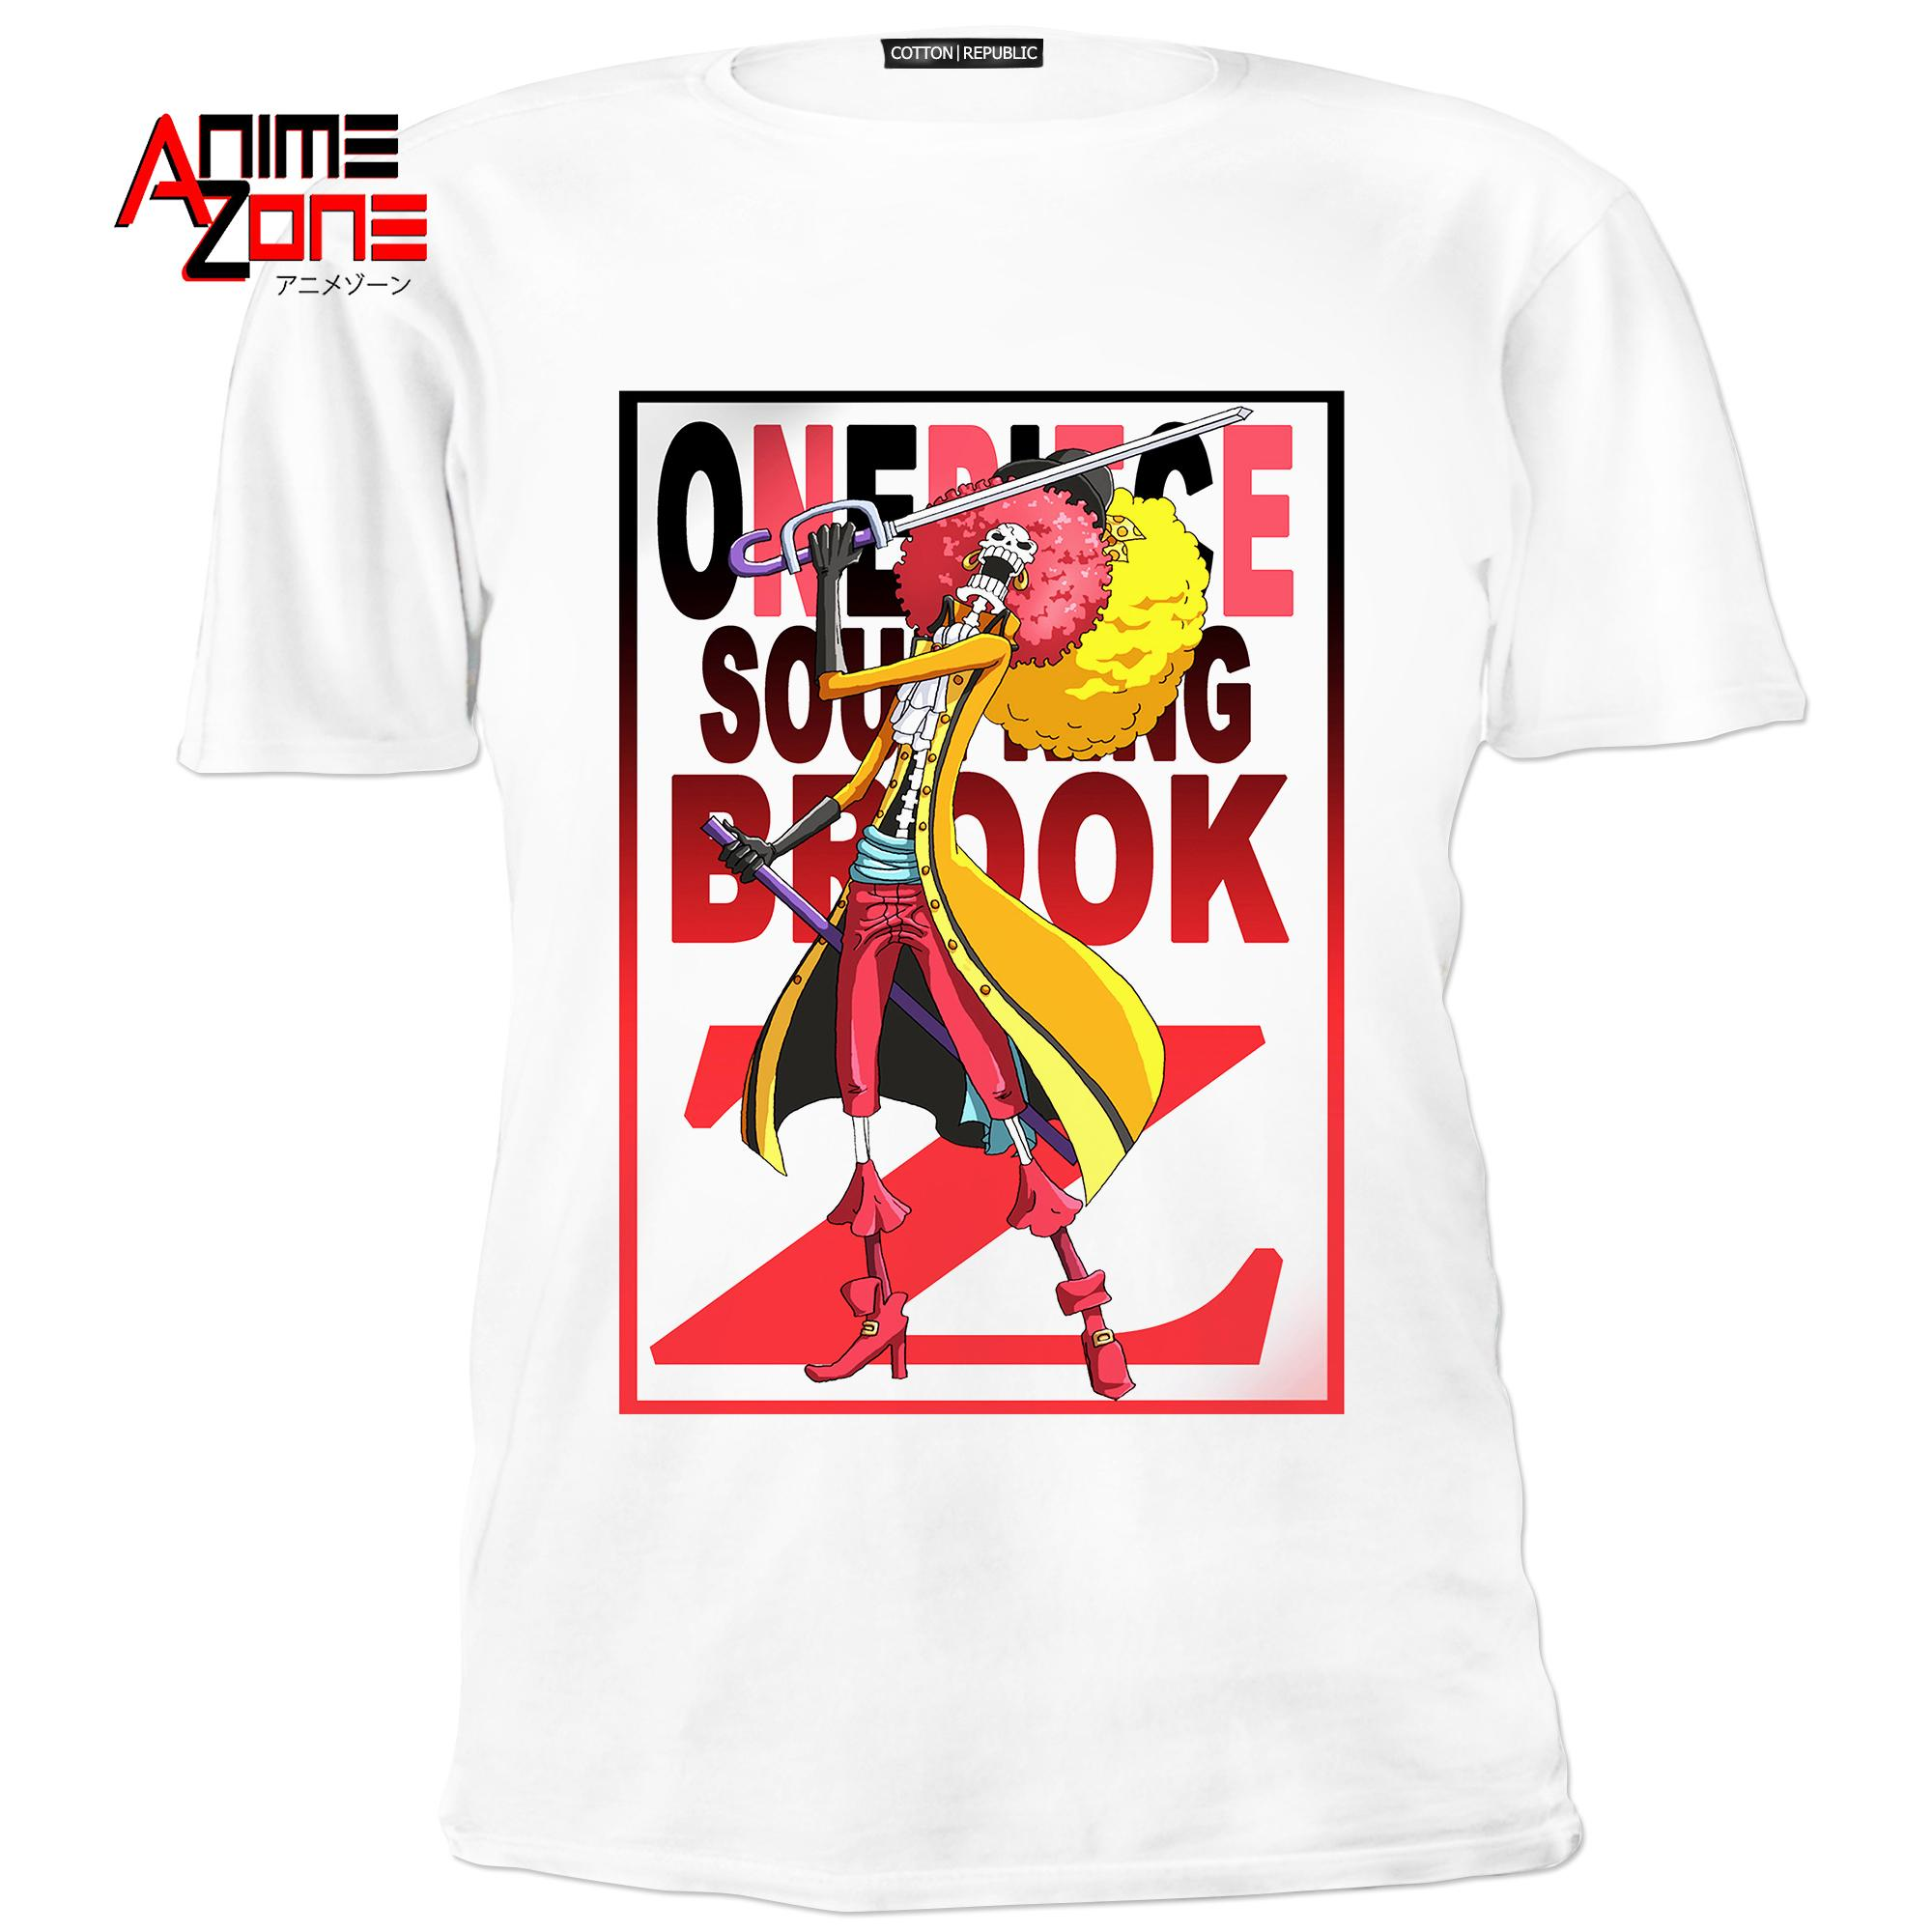 6587a18d7 Anime Zone One Piece Film Z Edition Cotton Printed Unisex T-Shirt (White)